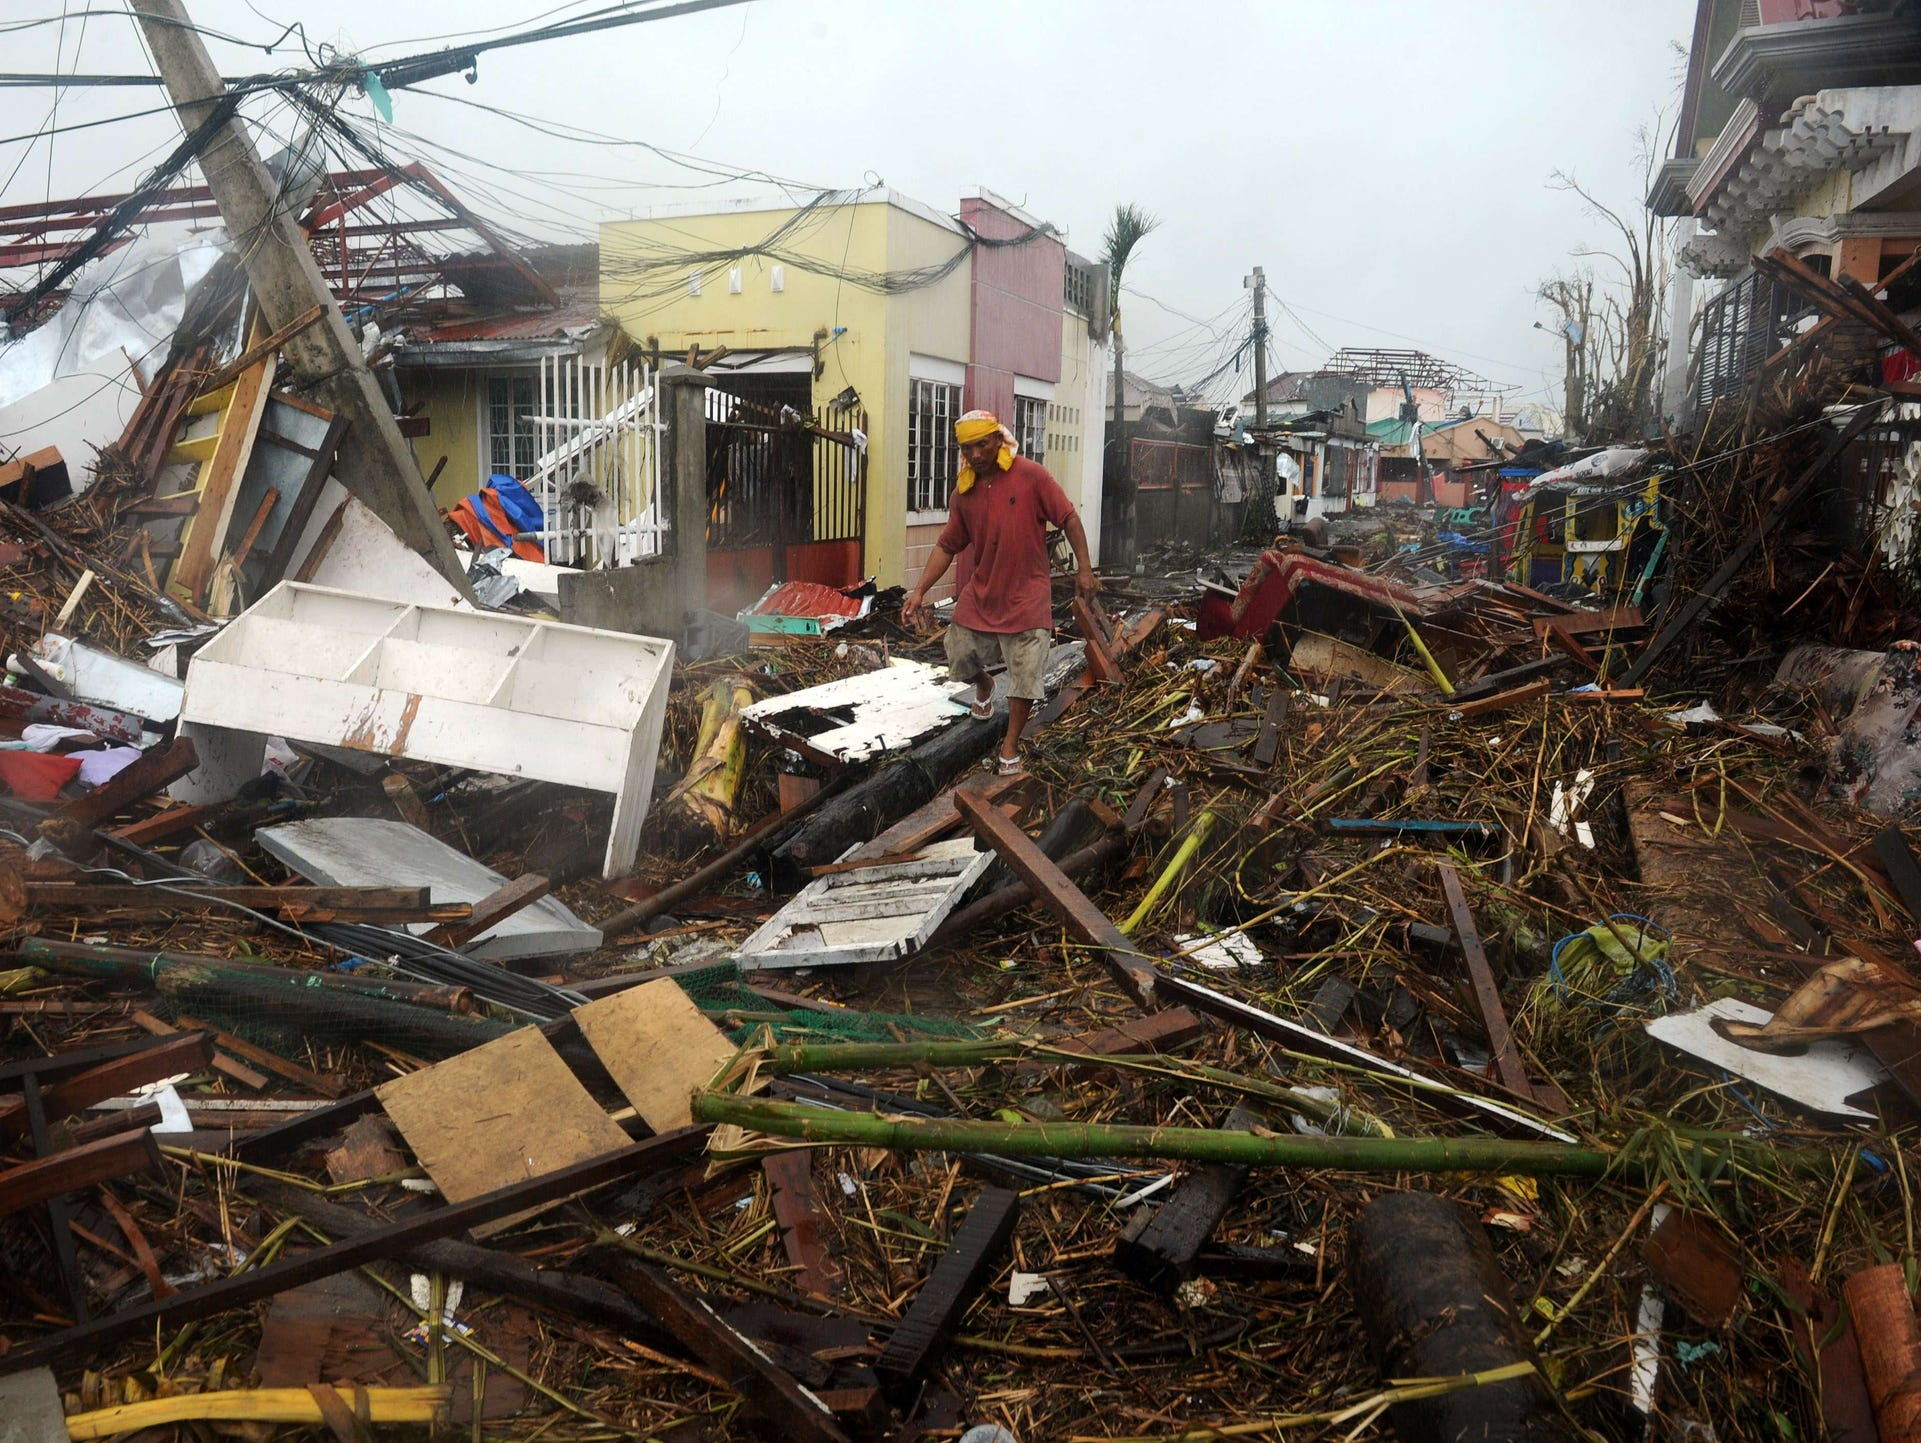 A man walks among debris of destroyed houses in Tacloban.